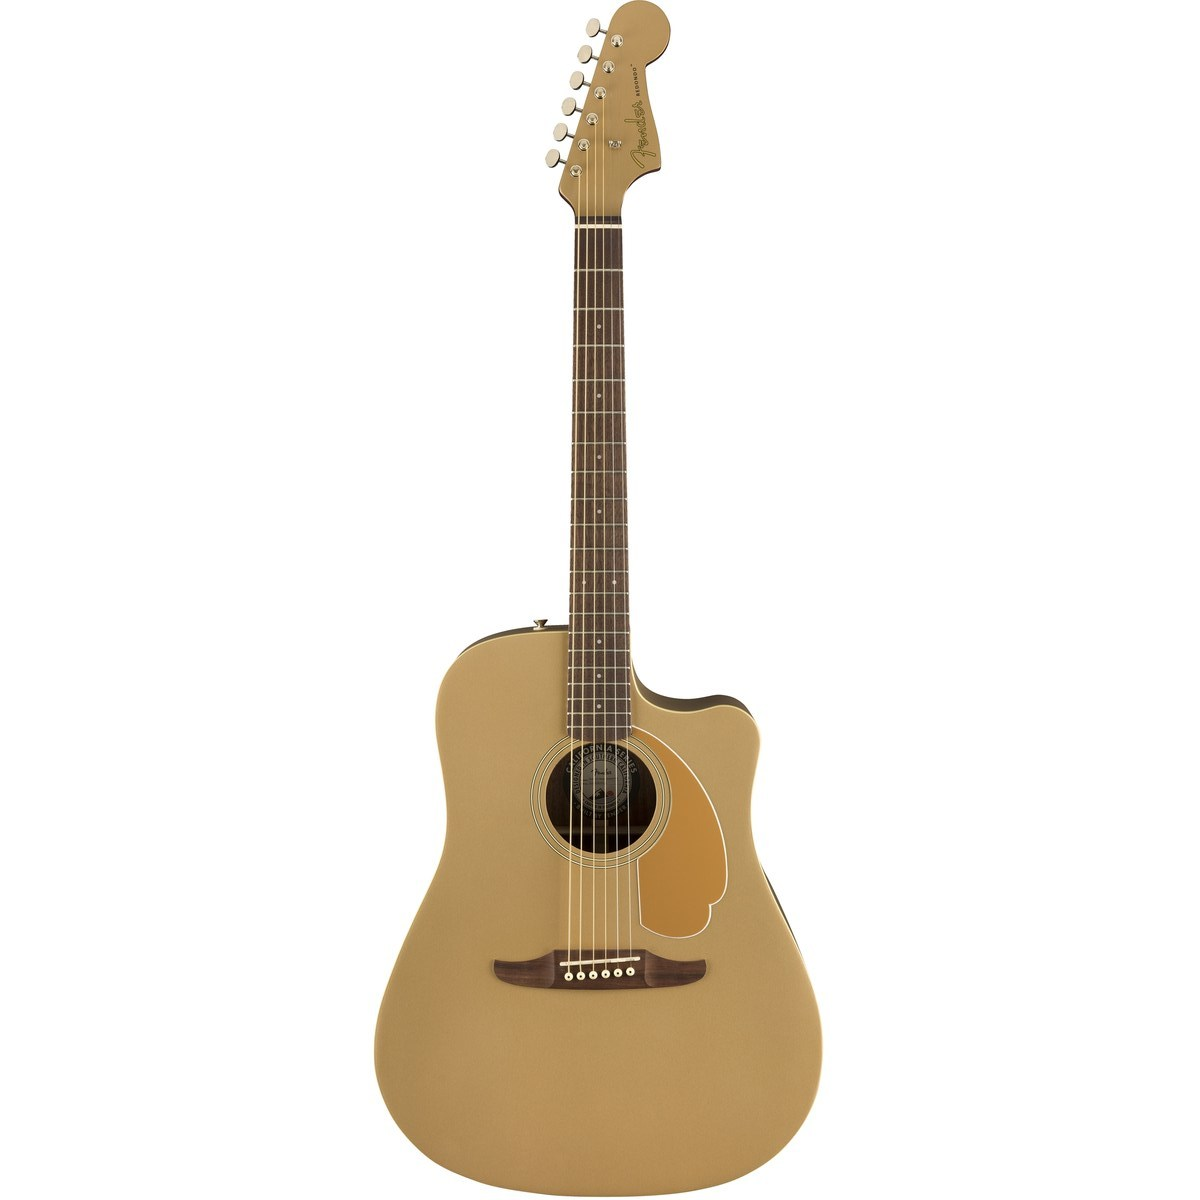 Image of   Fender Redondo Player, BZS western-guitar bronze satin